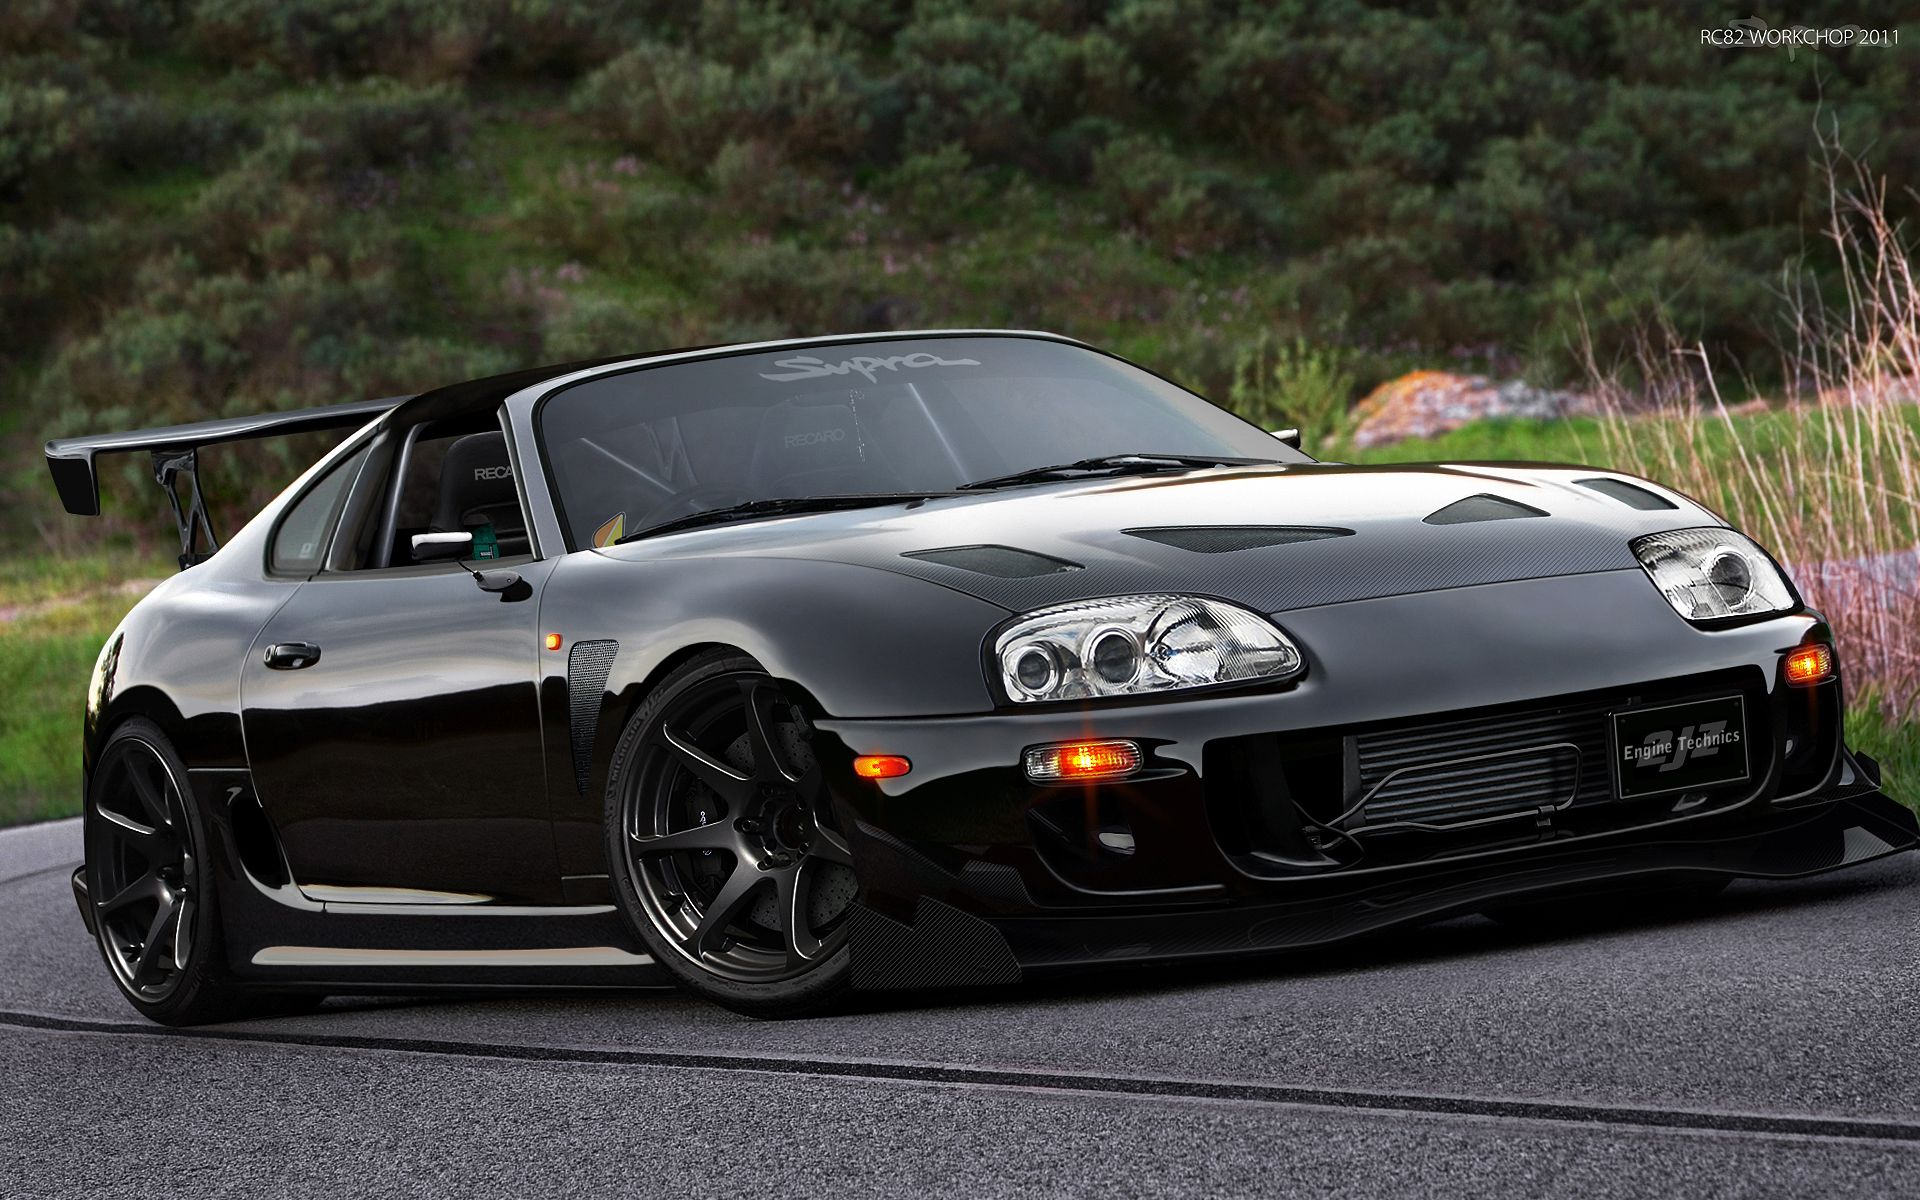 toyota supra black 3 supra pinterest toyota supra toyota and cars. Black Bedroom Furniture Sets. Home Design Ideas